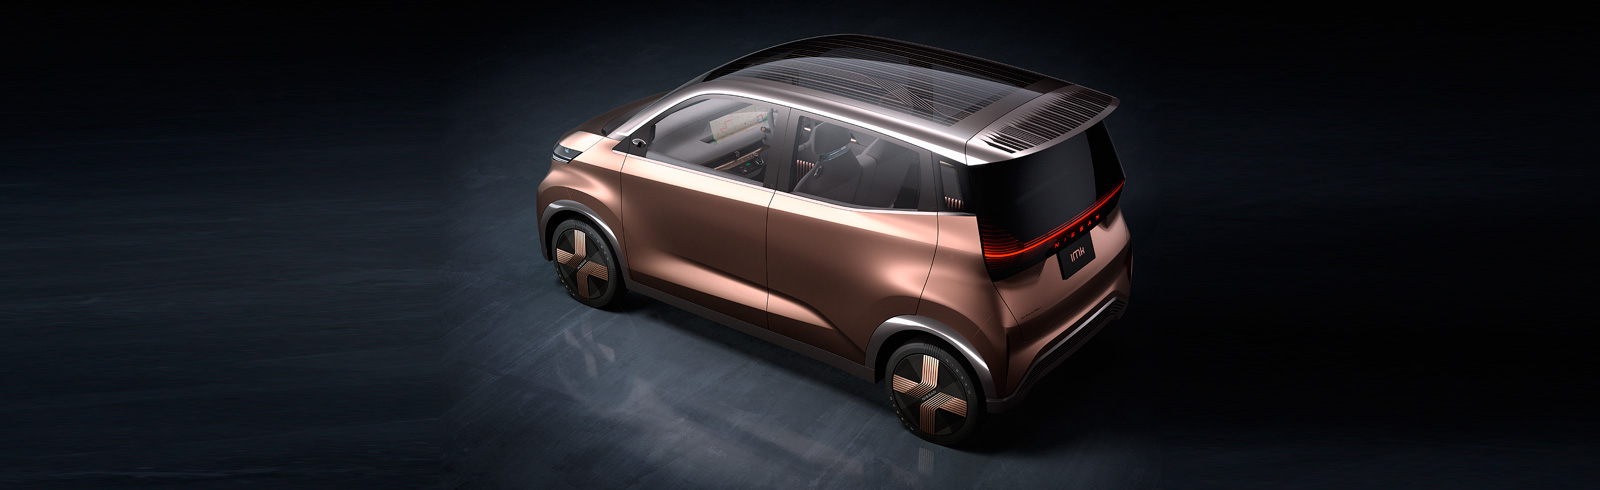 The Nissan IMk concept hints at the new direction of Nissan's design language